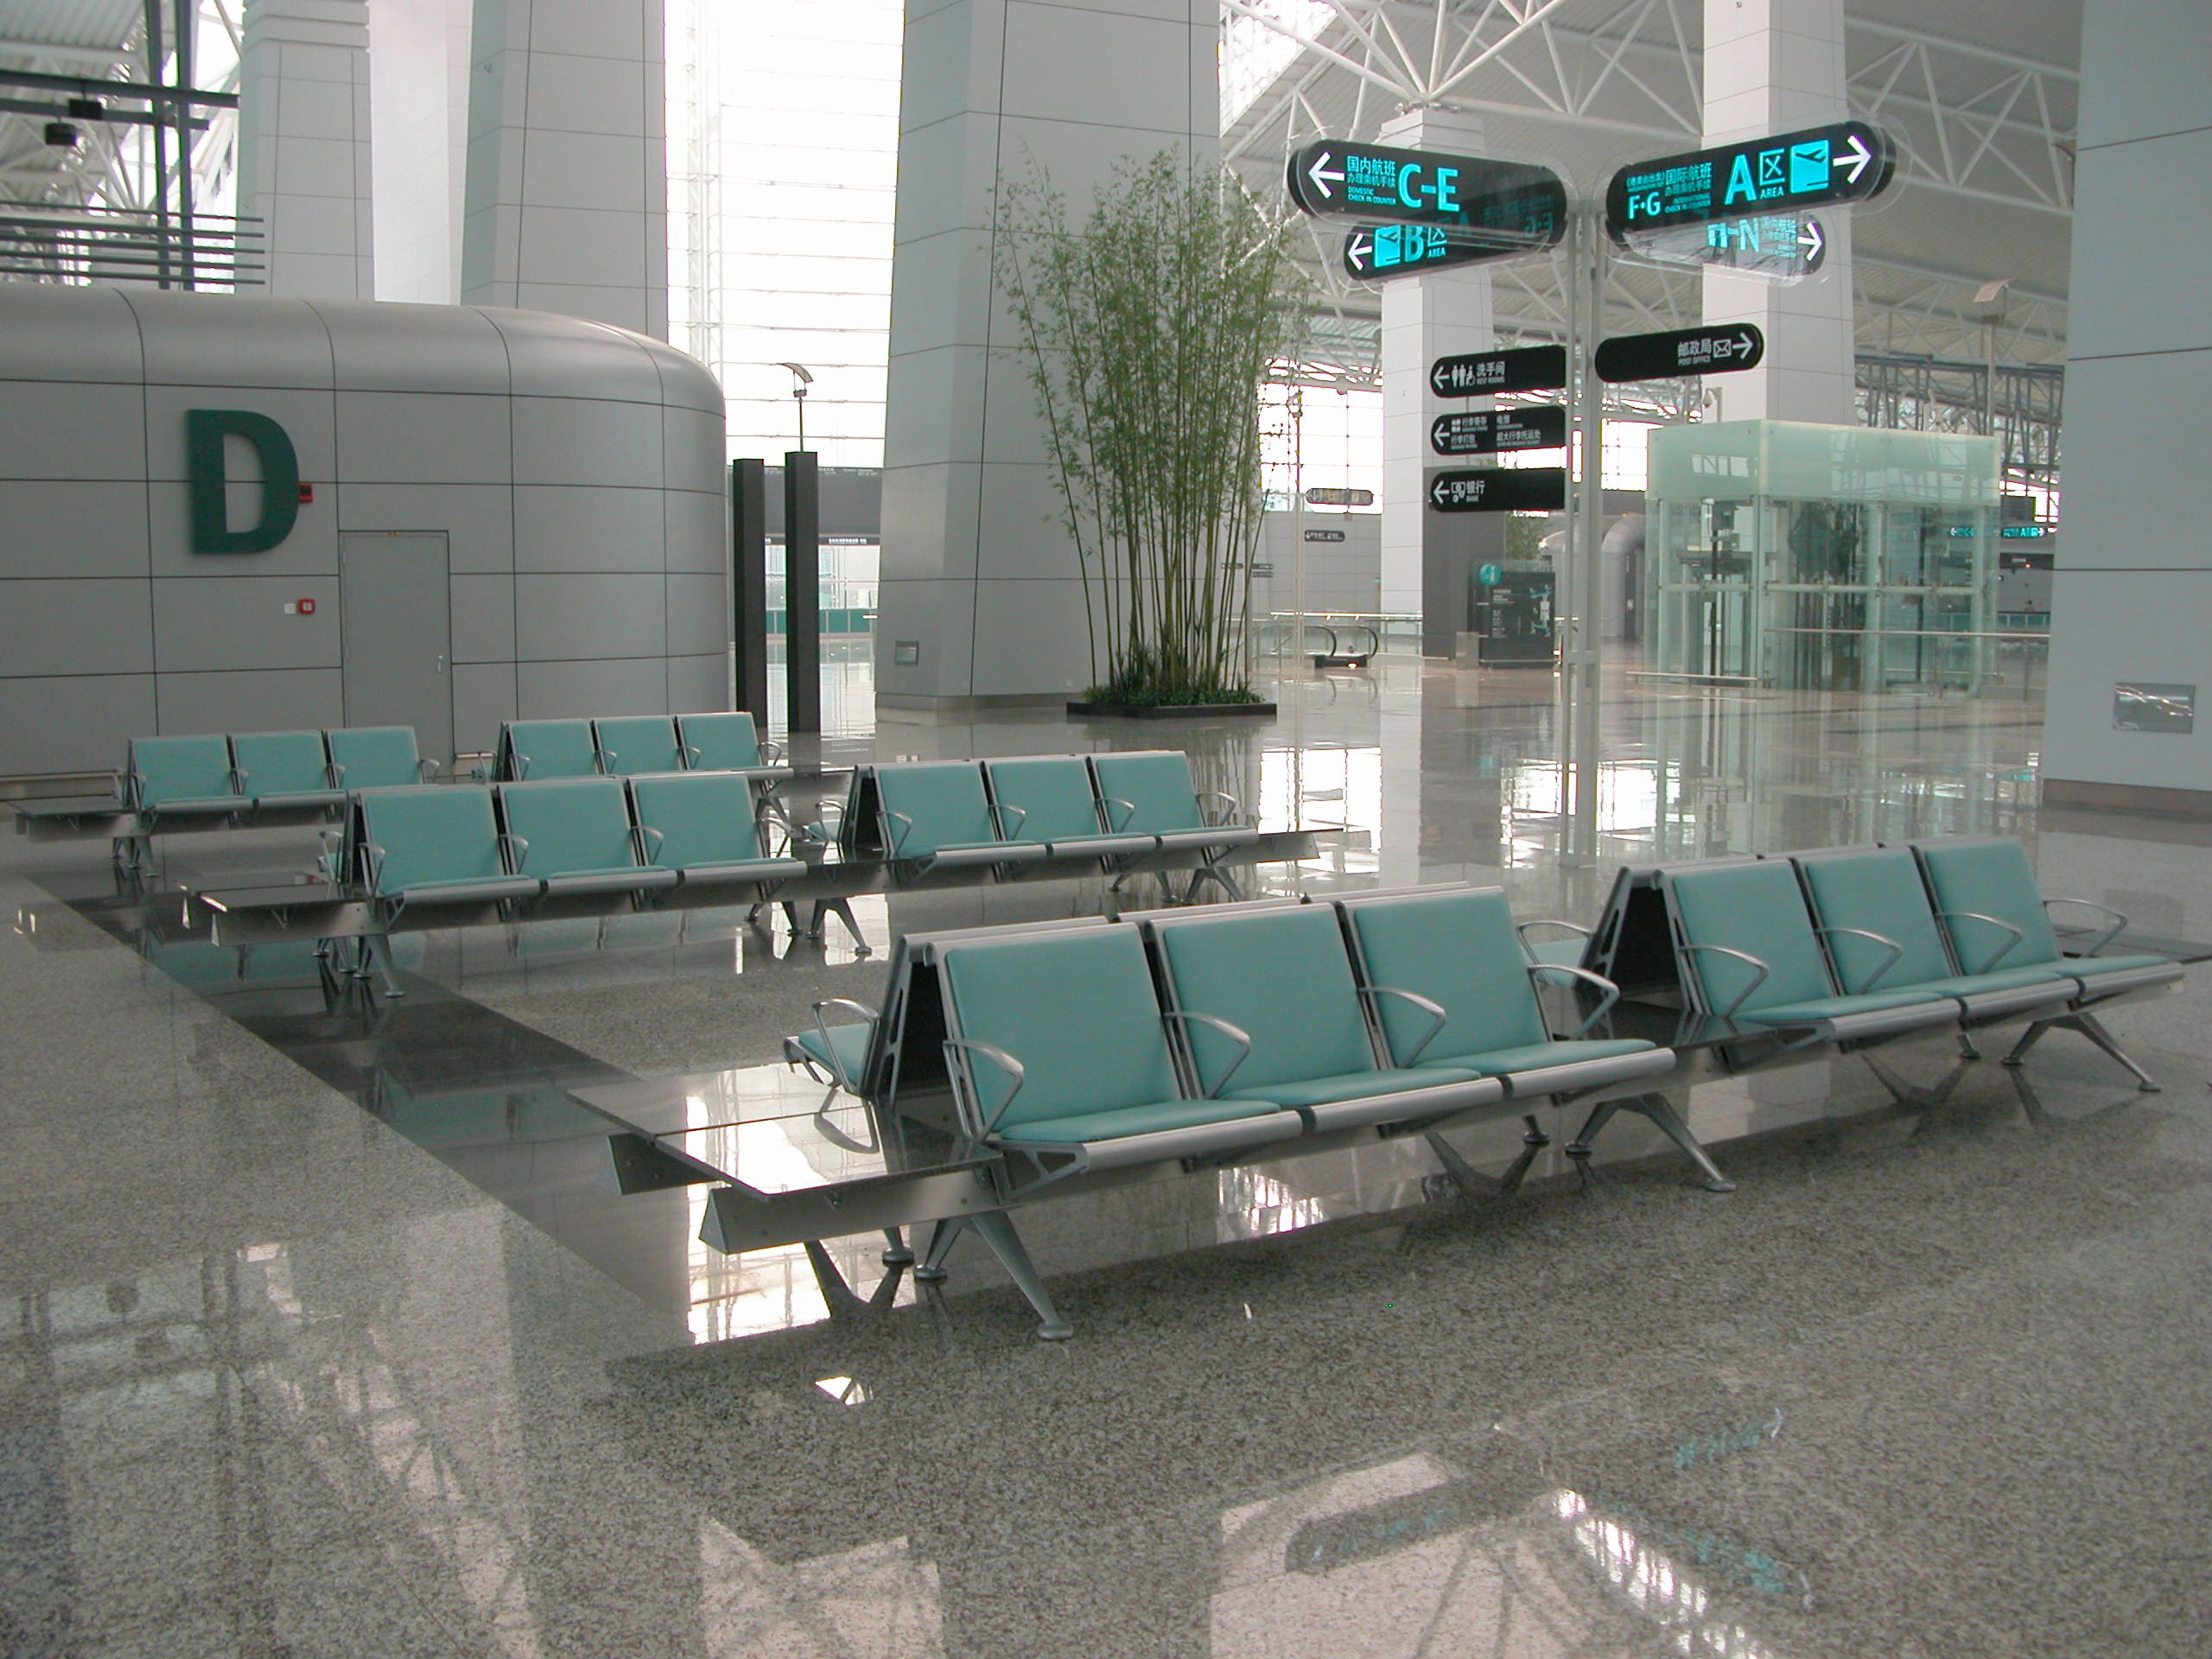 guangzhou airport seating trax